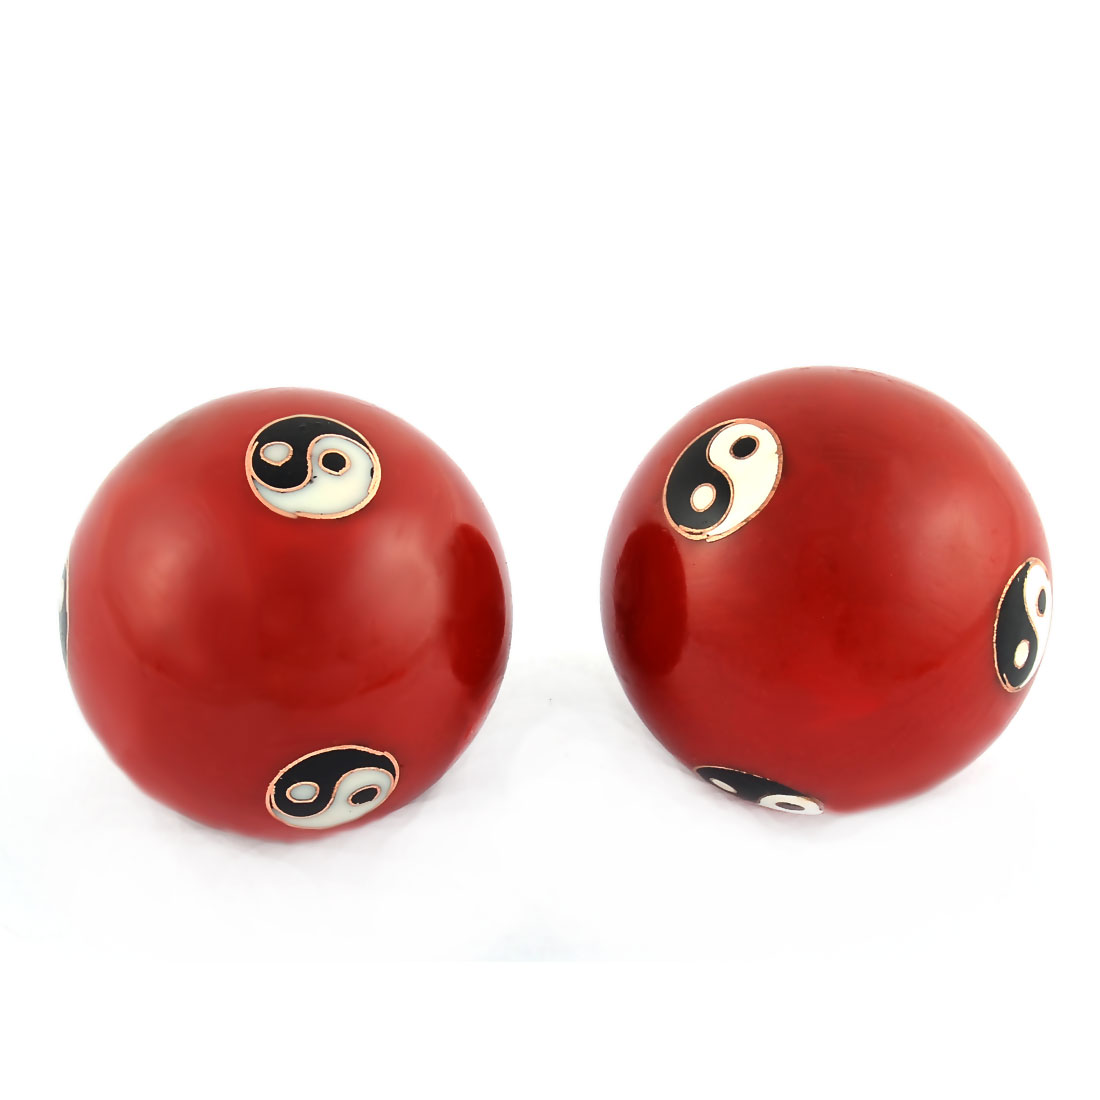 Cloisonne Yin-Yang Pattern Chinese Baoding Exercise Stress Relief Healthy Ball Pair